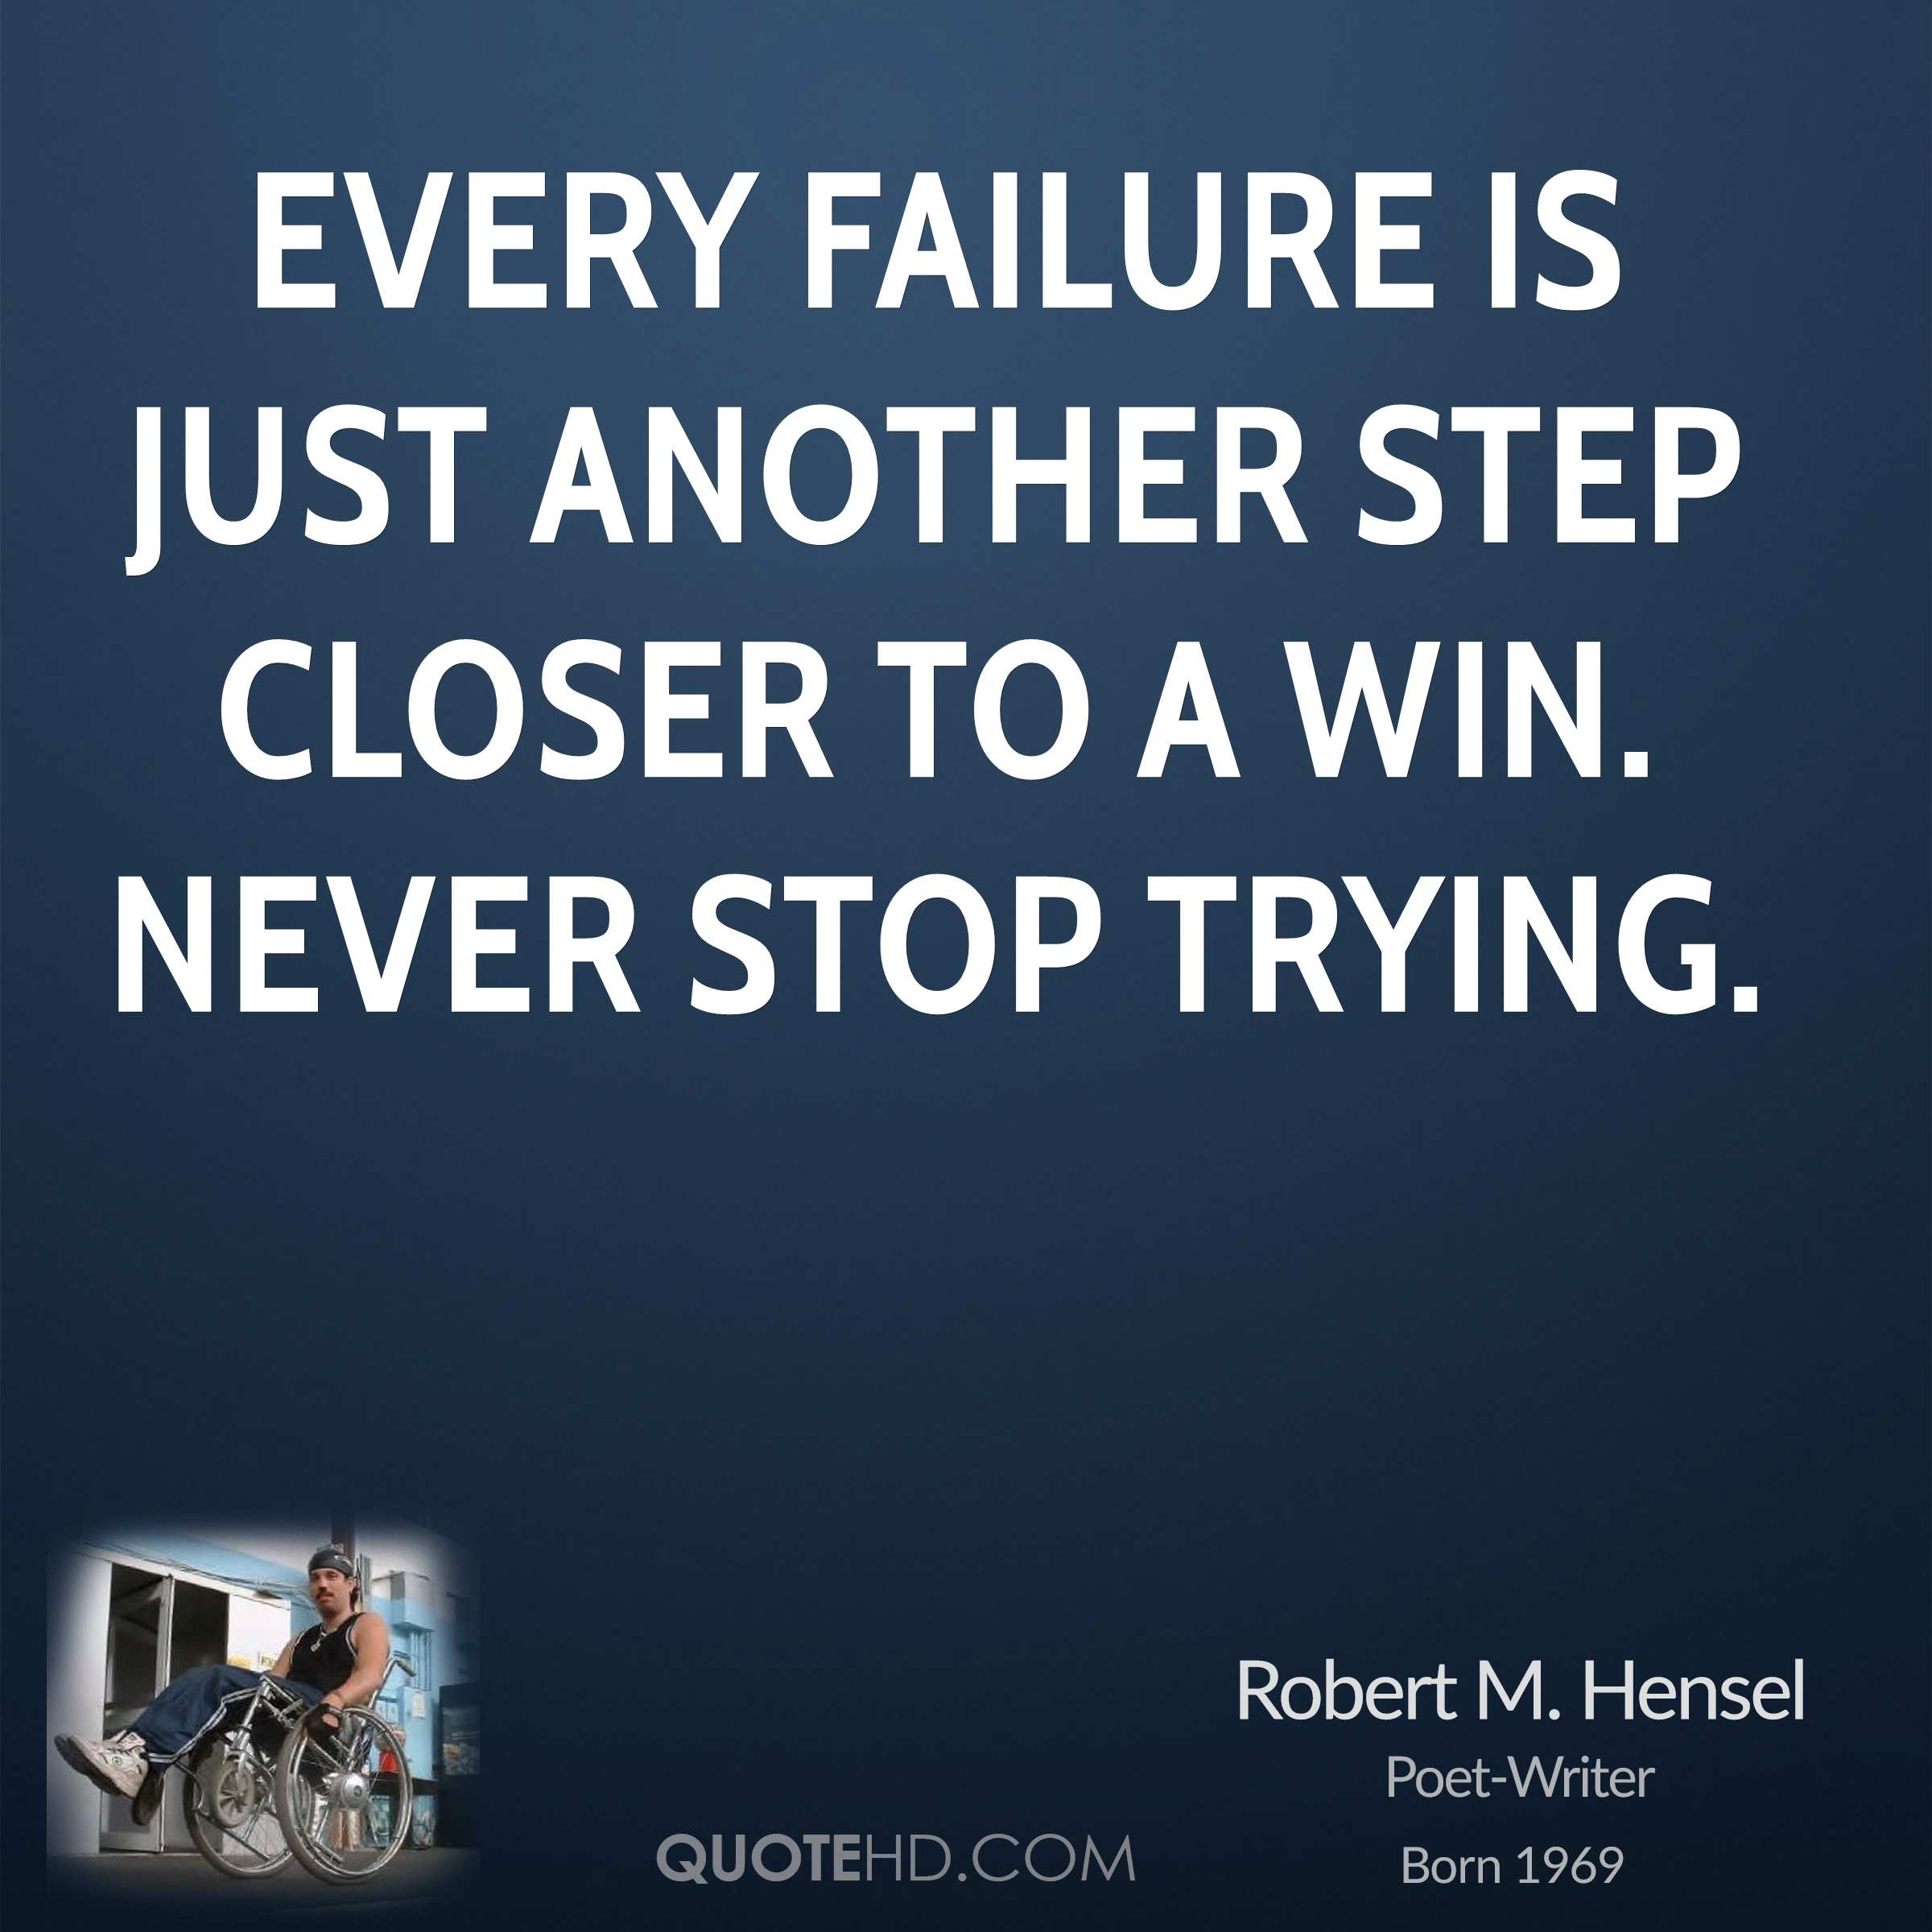 Every failure is just another step closer to a win. Never stop trying.